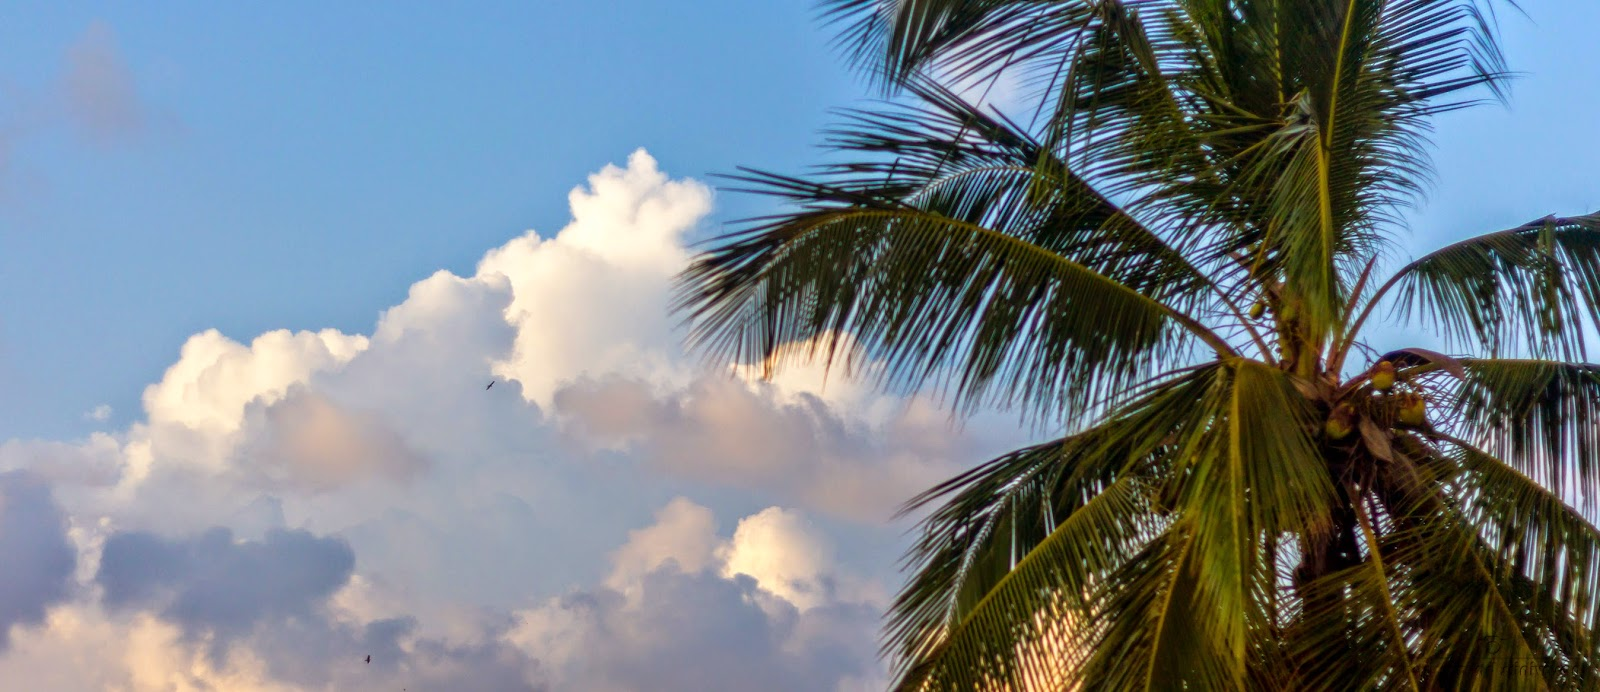 Cloud formation with coconut tree